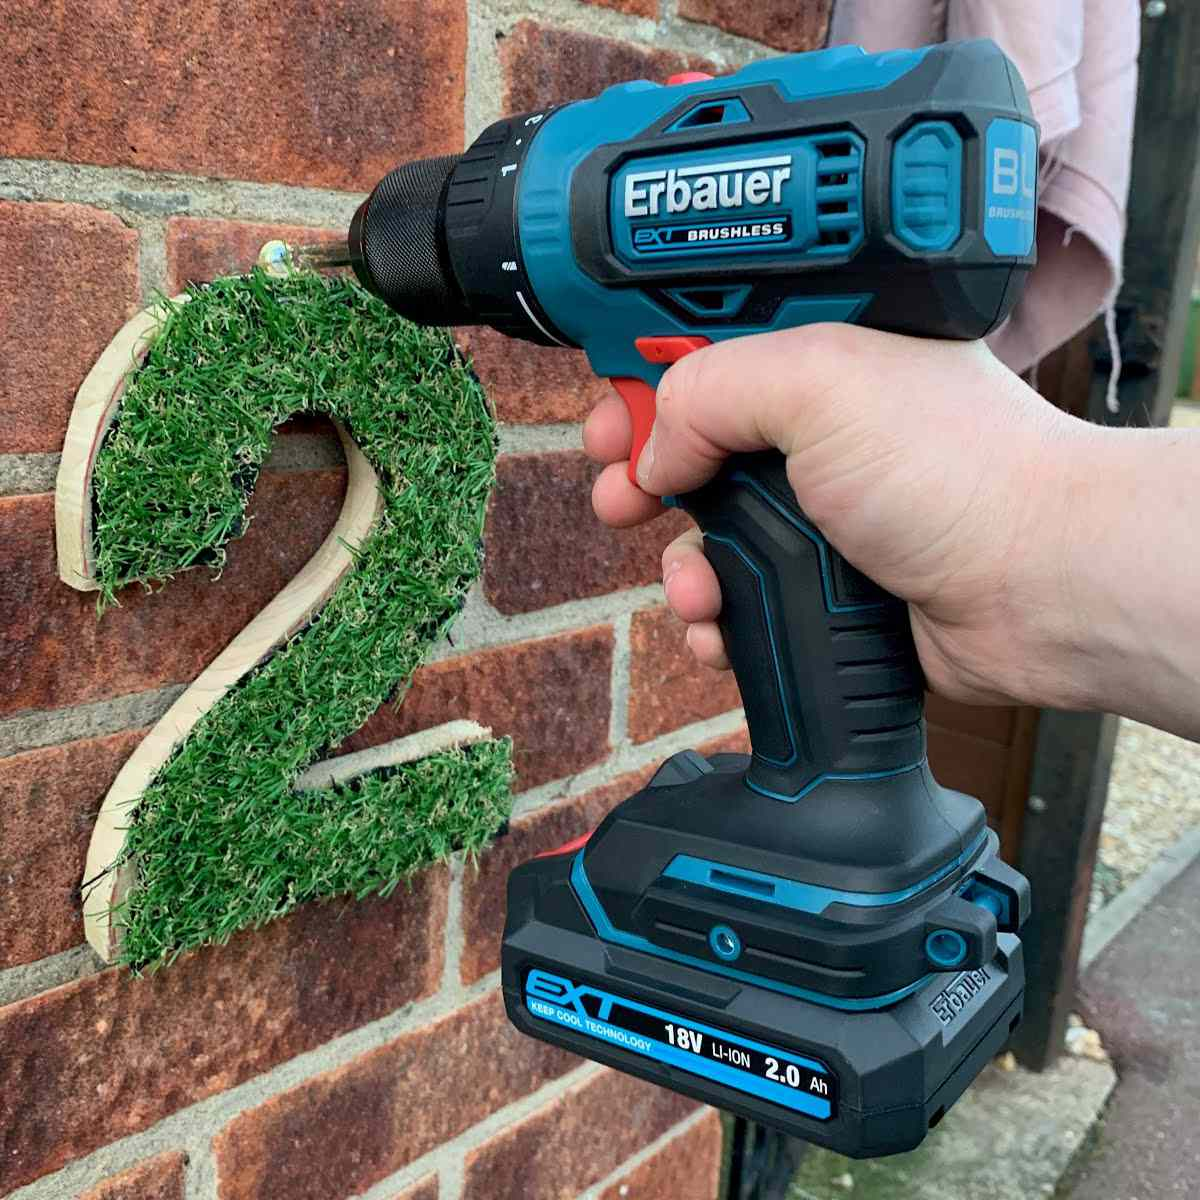 Grass house numbers drilled onto brick.